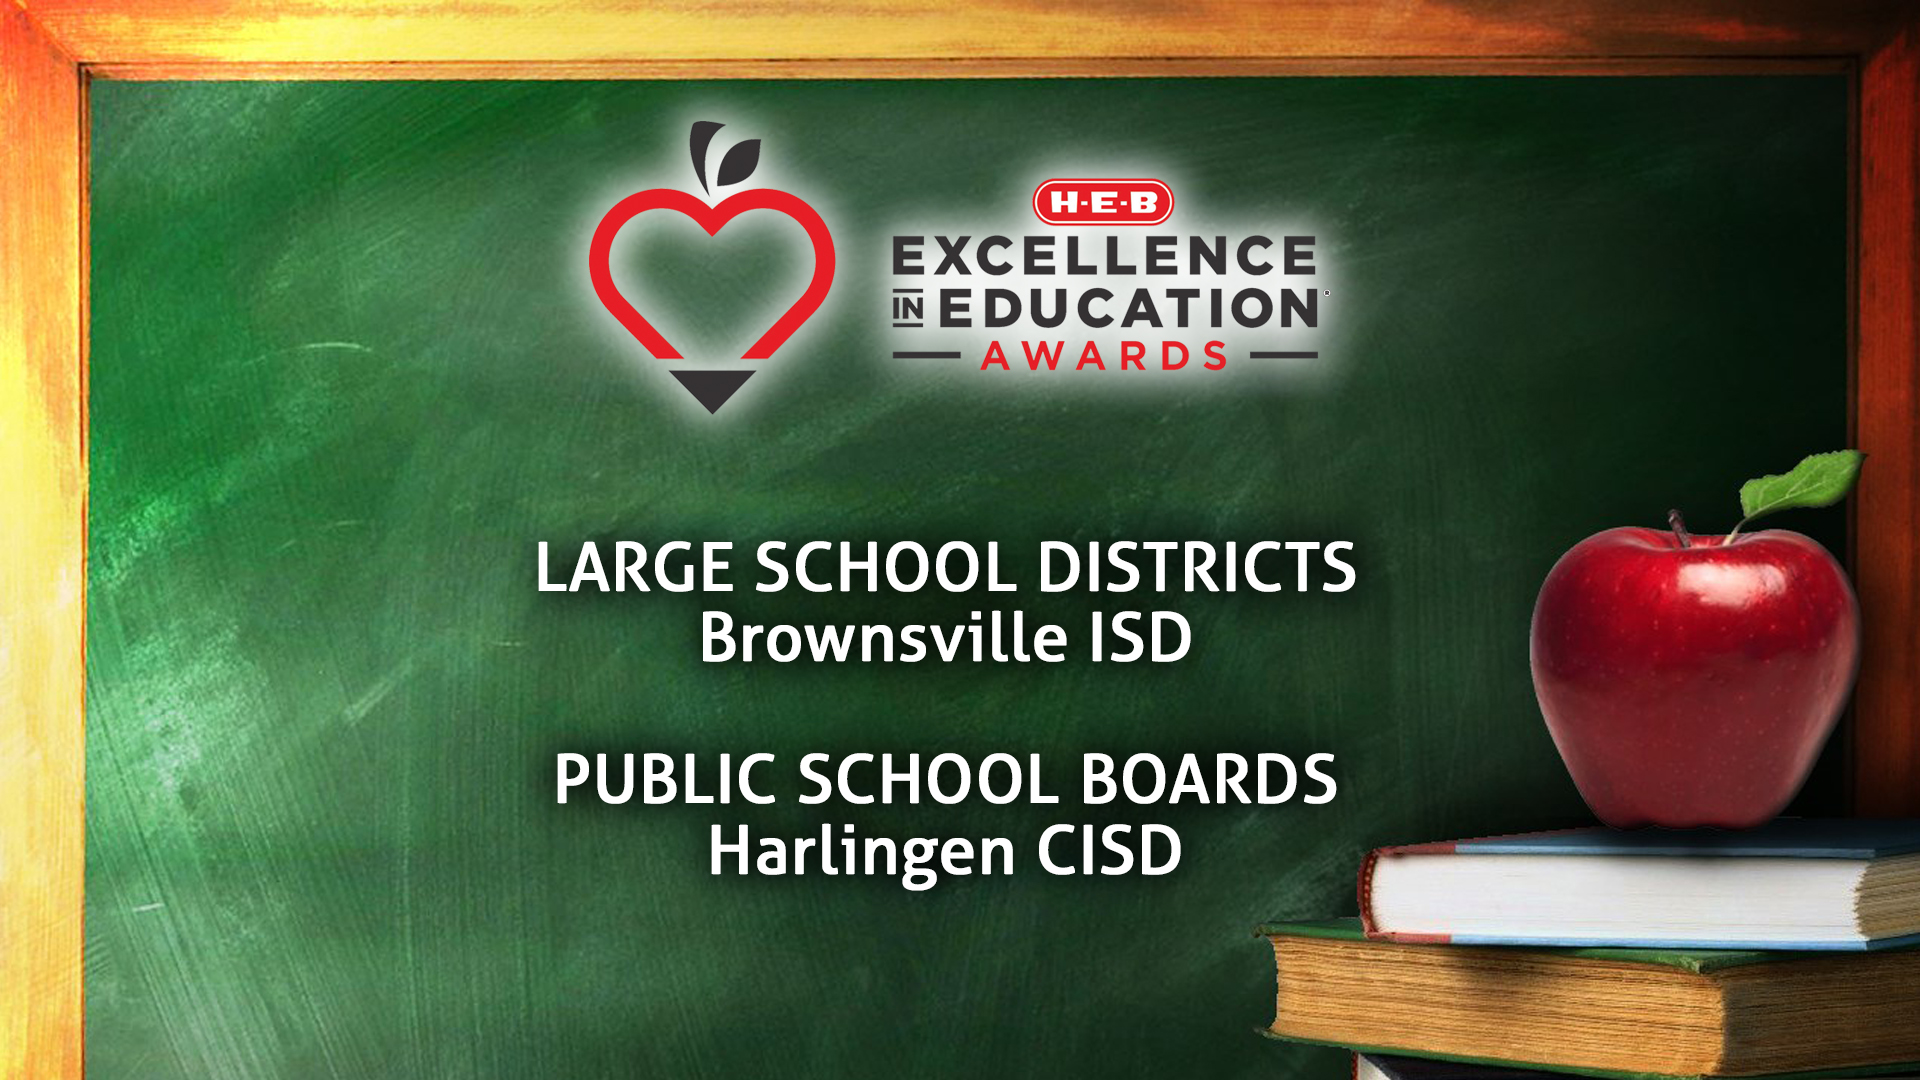 HEB_Excellence2_1484687998238.jpg